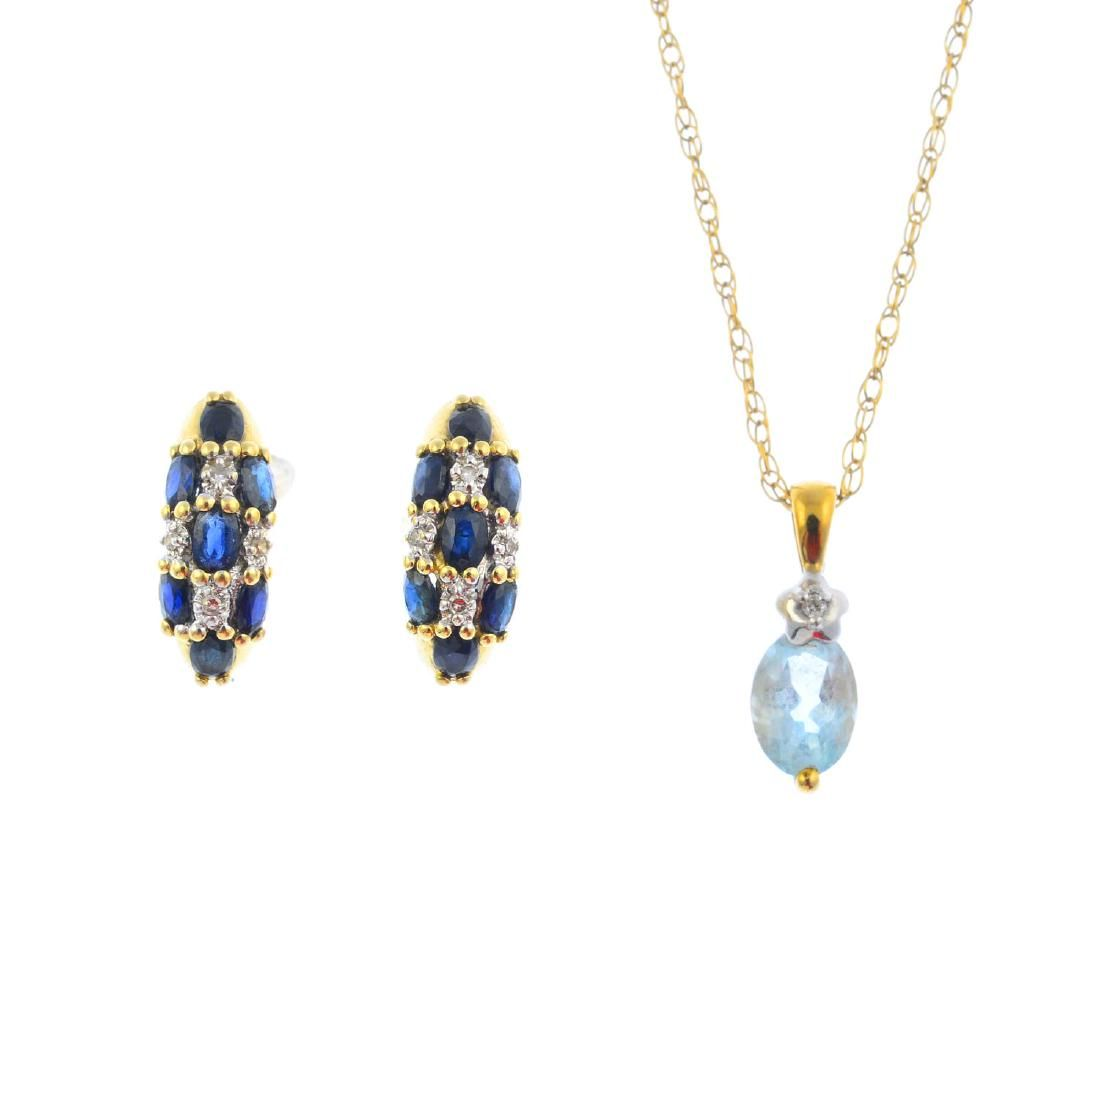 A gem-set pendant and pair of earrings. To include an